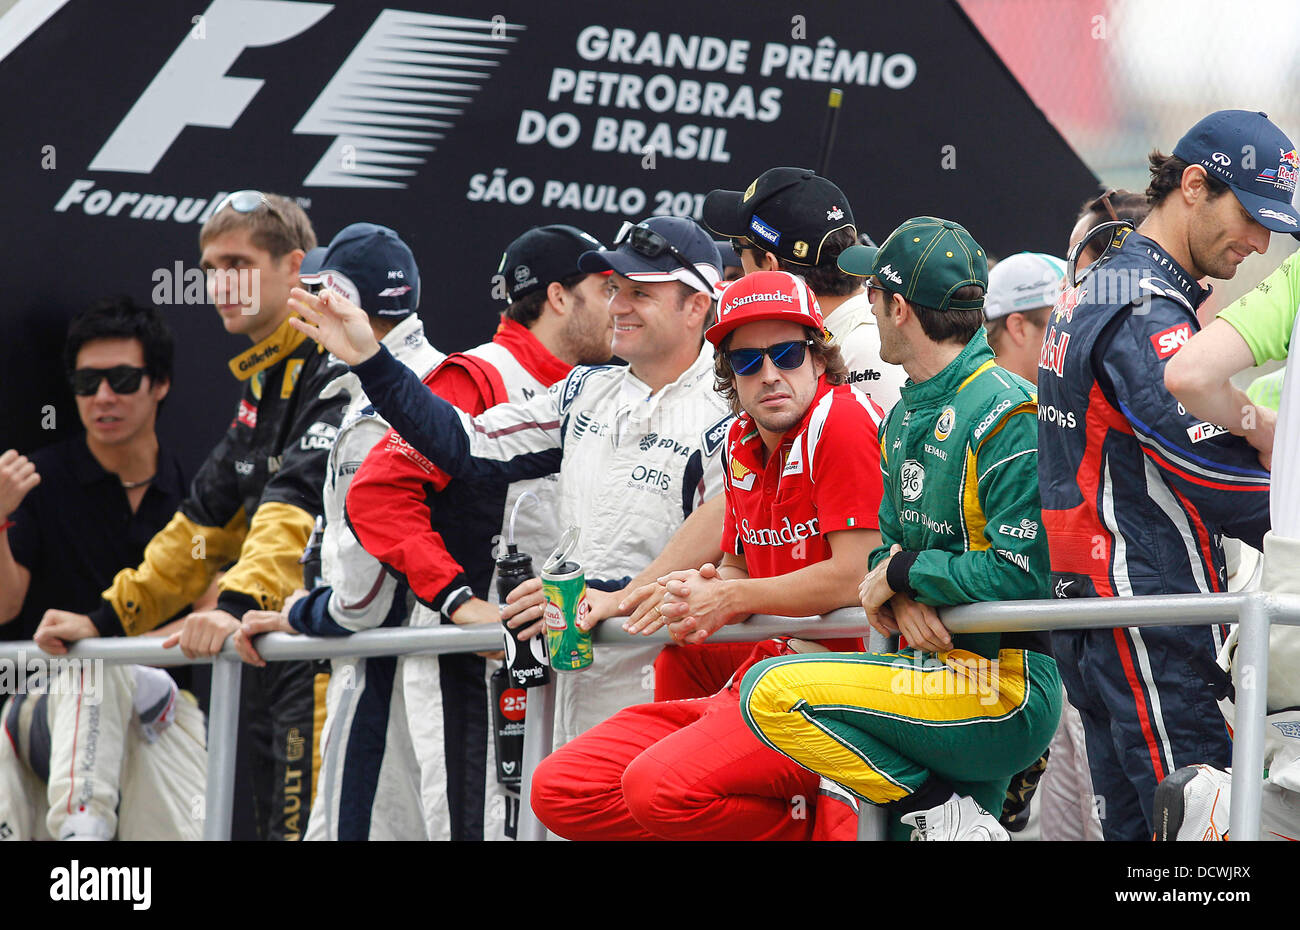 Rubens Barrichello, Fernando Alonso, Vitaly Petrov,  The Brazilian Formula One Grand Prix at the Autodromo Jose - Stock Image